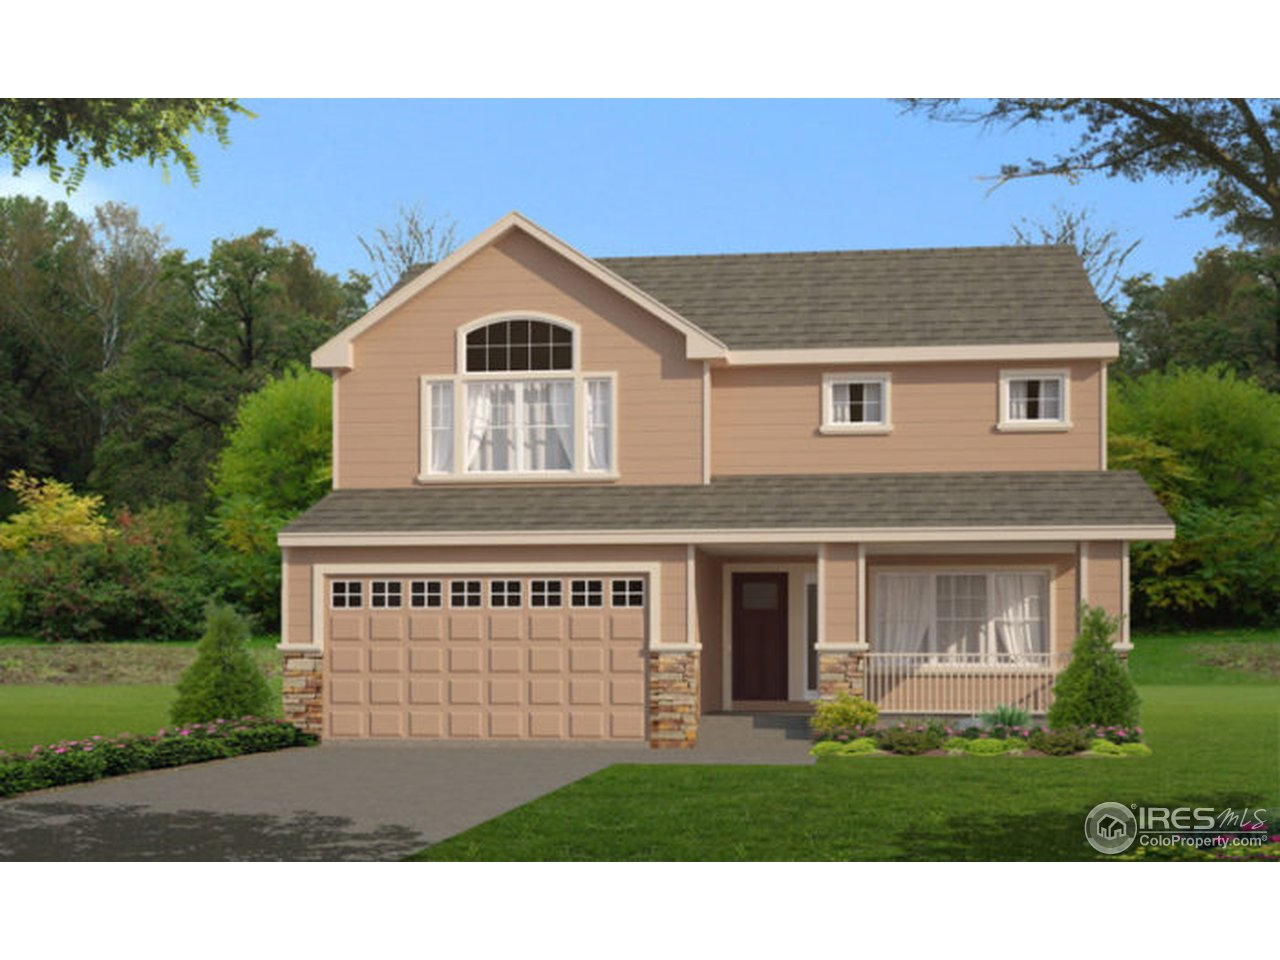 The Imperial plan features a large master suite, 3 BR, 2.5 BA, 4 car garage, rear patio, spacious kitchen, large upper floor loft. This home will have granite countertops, ceramic tile, A/C, garage door openers, garage service door, large front porch, and so much more! Call Agent to view this home today. Estimated completion of 11/2018.